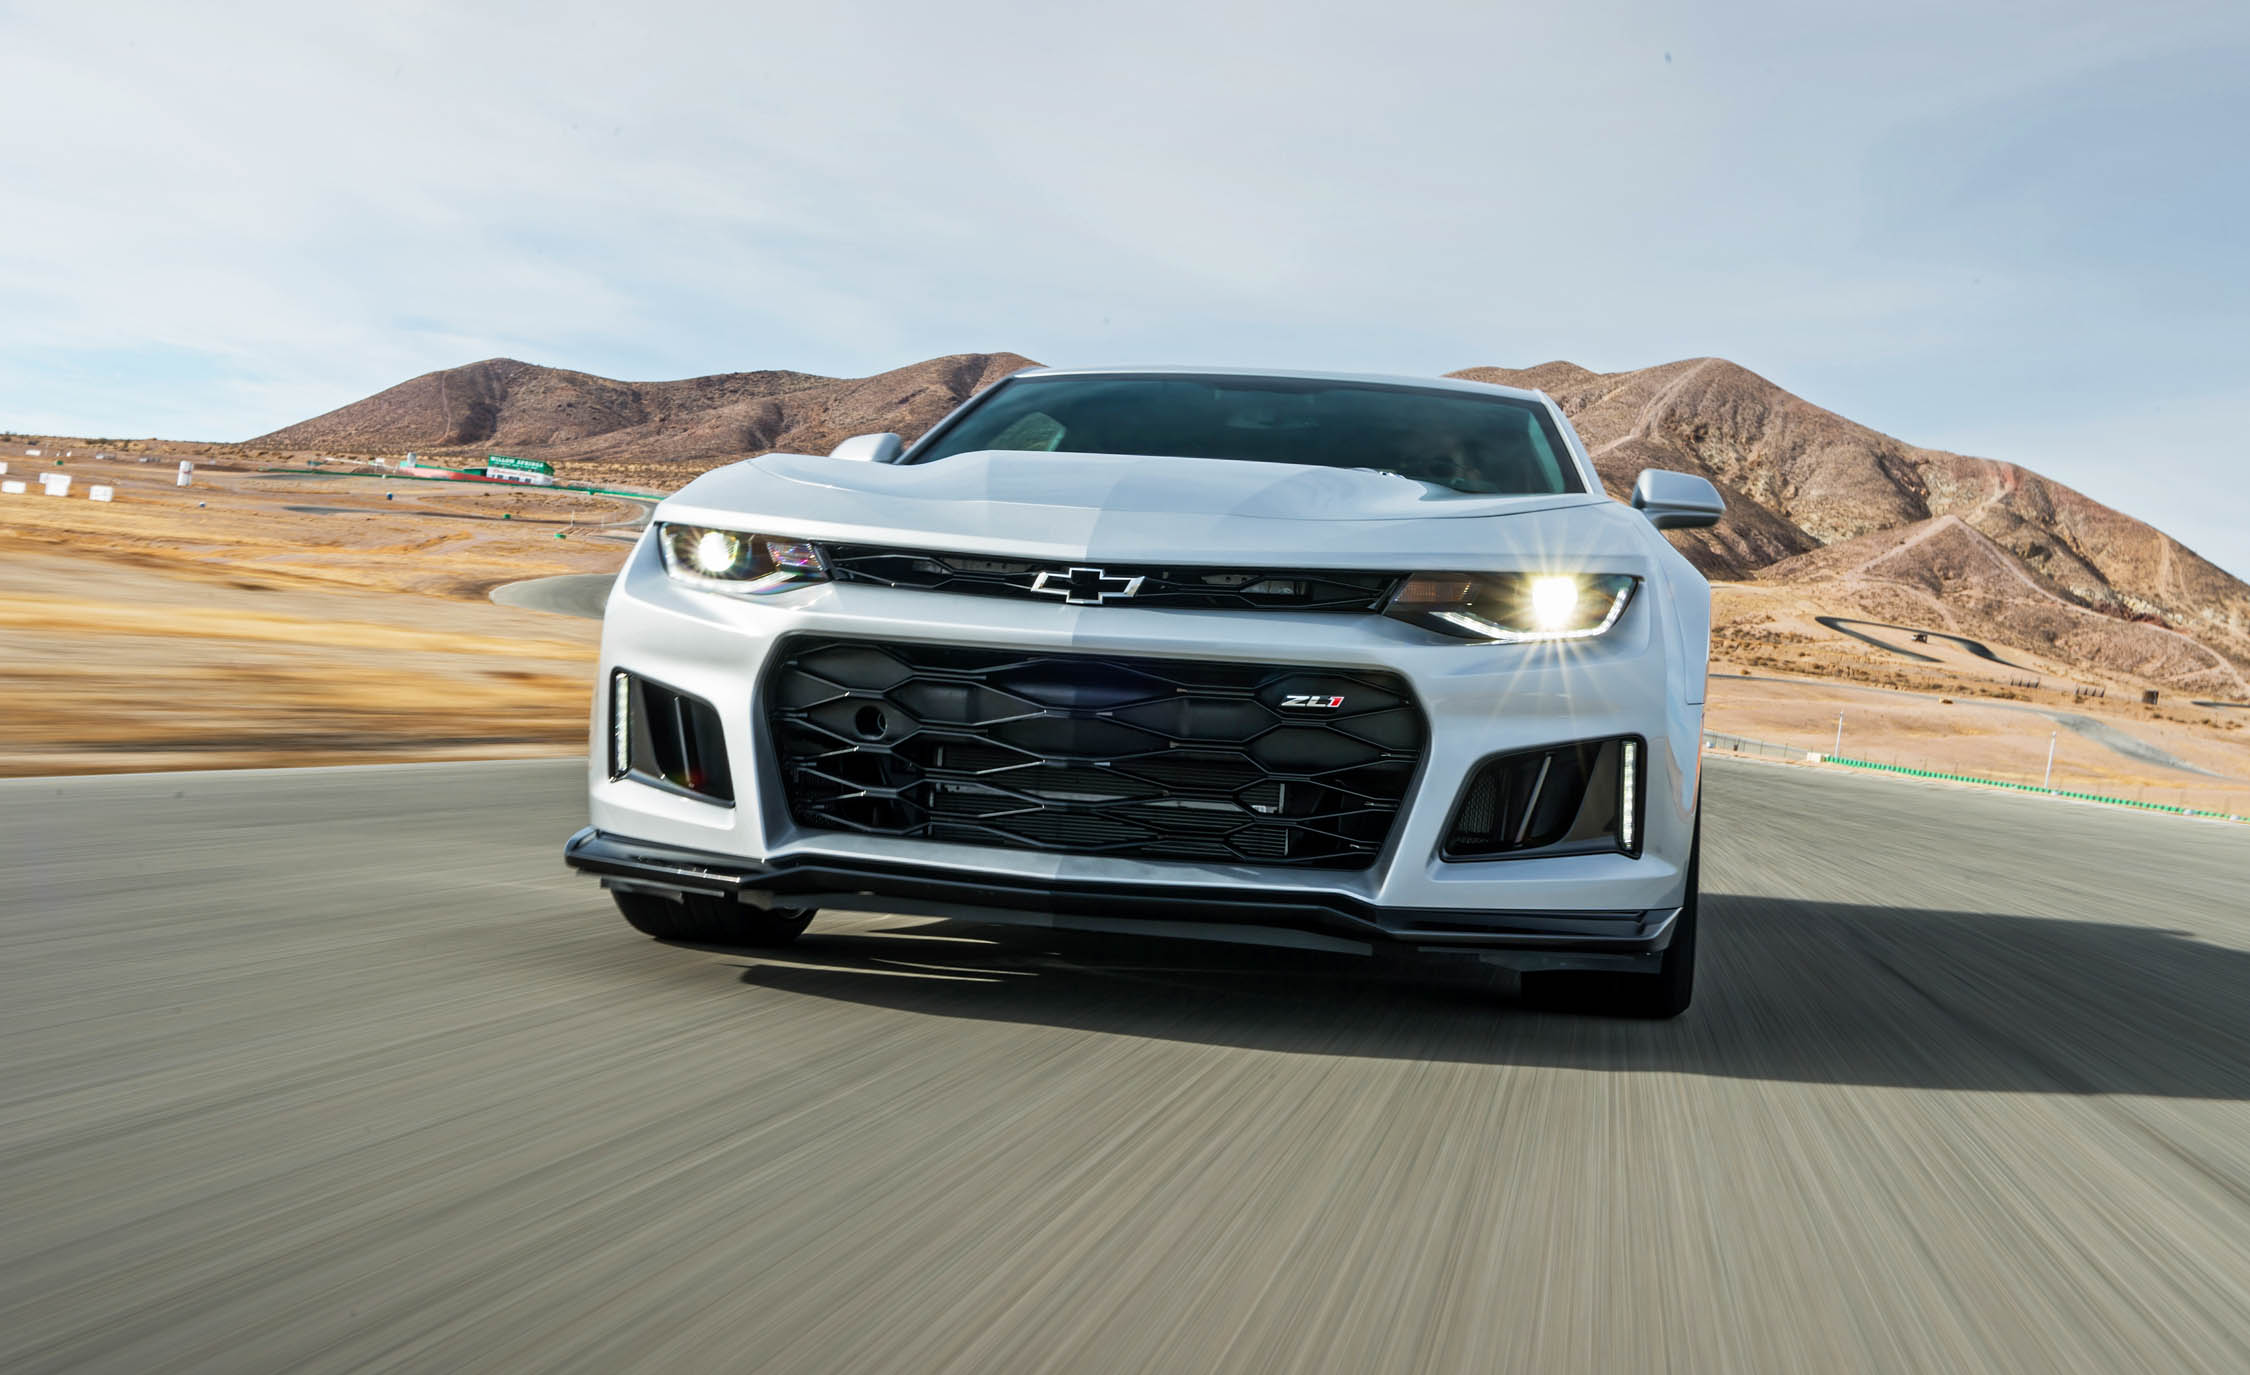 2017 Chevrolet Camaro ZL1 | Cars Exclusive Videos and Photos Updates